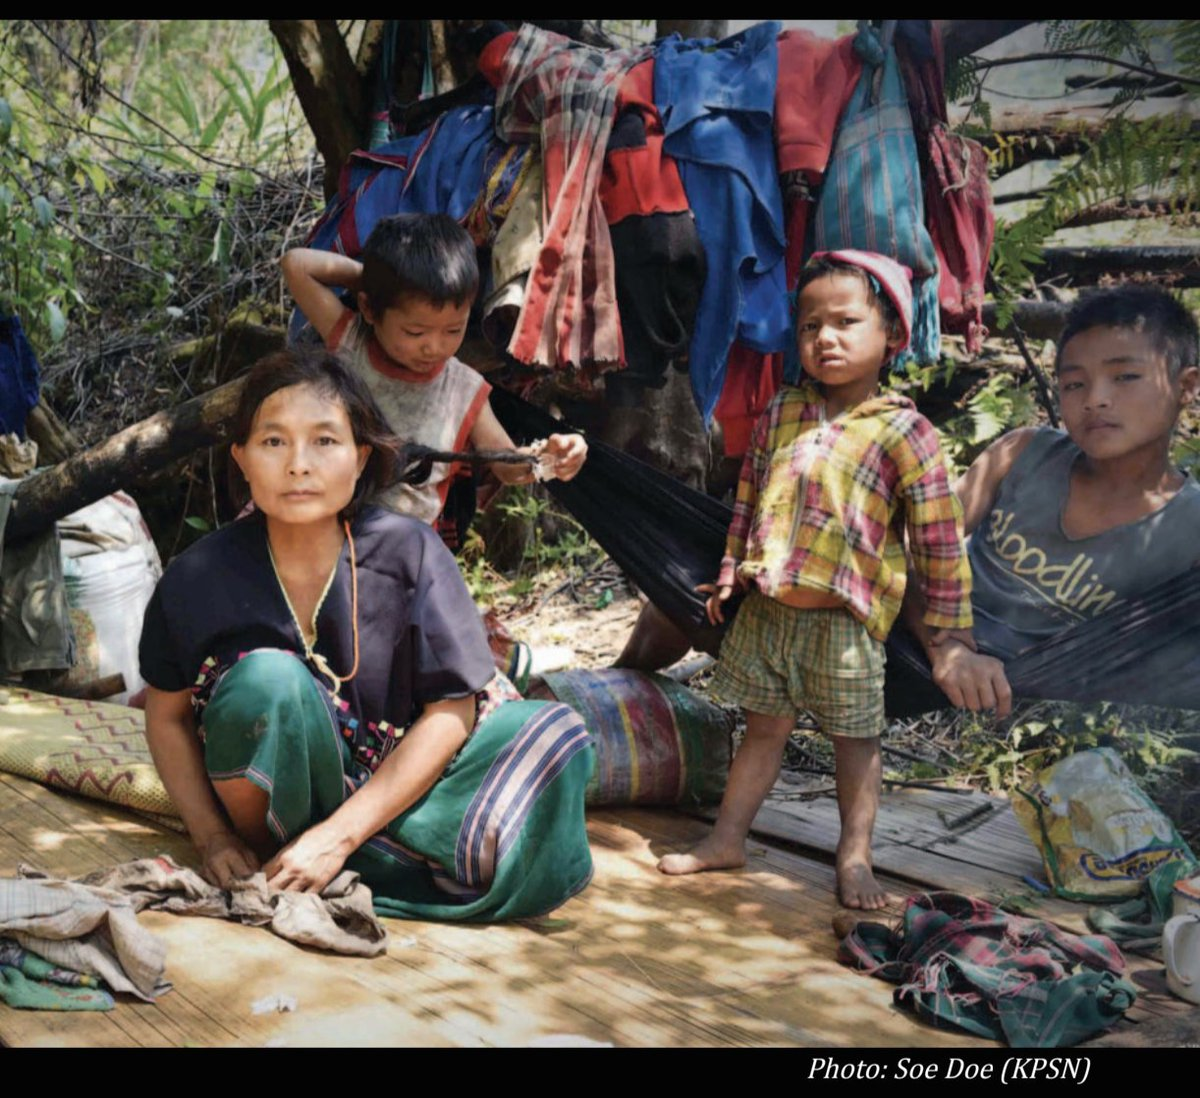 &quot;The Nightmare Returns - #Karen hopes for peace and stability dashed by #Burma Army actions&quot; NEW REPORT released by the Karen Peace Support Network. @PartnersRelief have walked alongside the Karen for more than 20 years. We too long for sustainable #peace.  https:// drive.google.com/file/d/1dNkd-a xRJKVjTprZuODksMxopUpOPSSY/view &nbsp; … <br>http://pic.twitter.com/IajF9LnBJ8